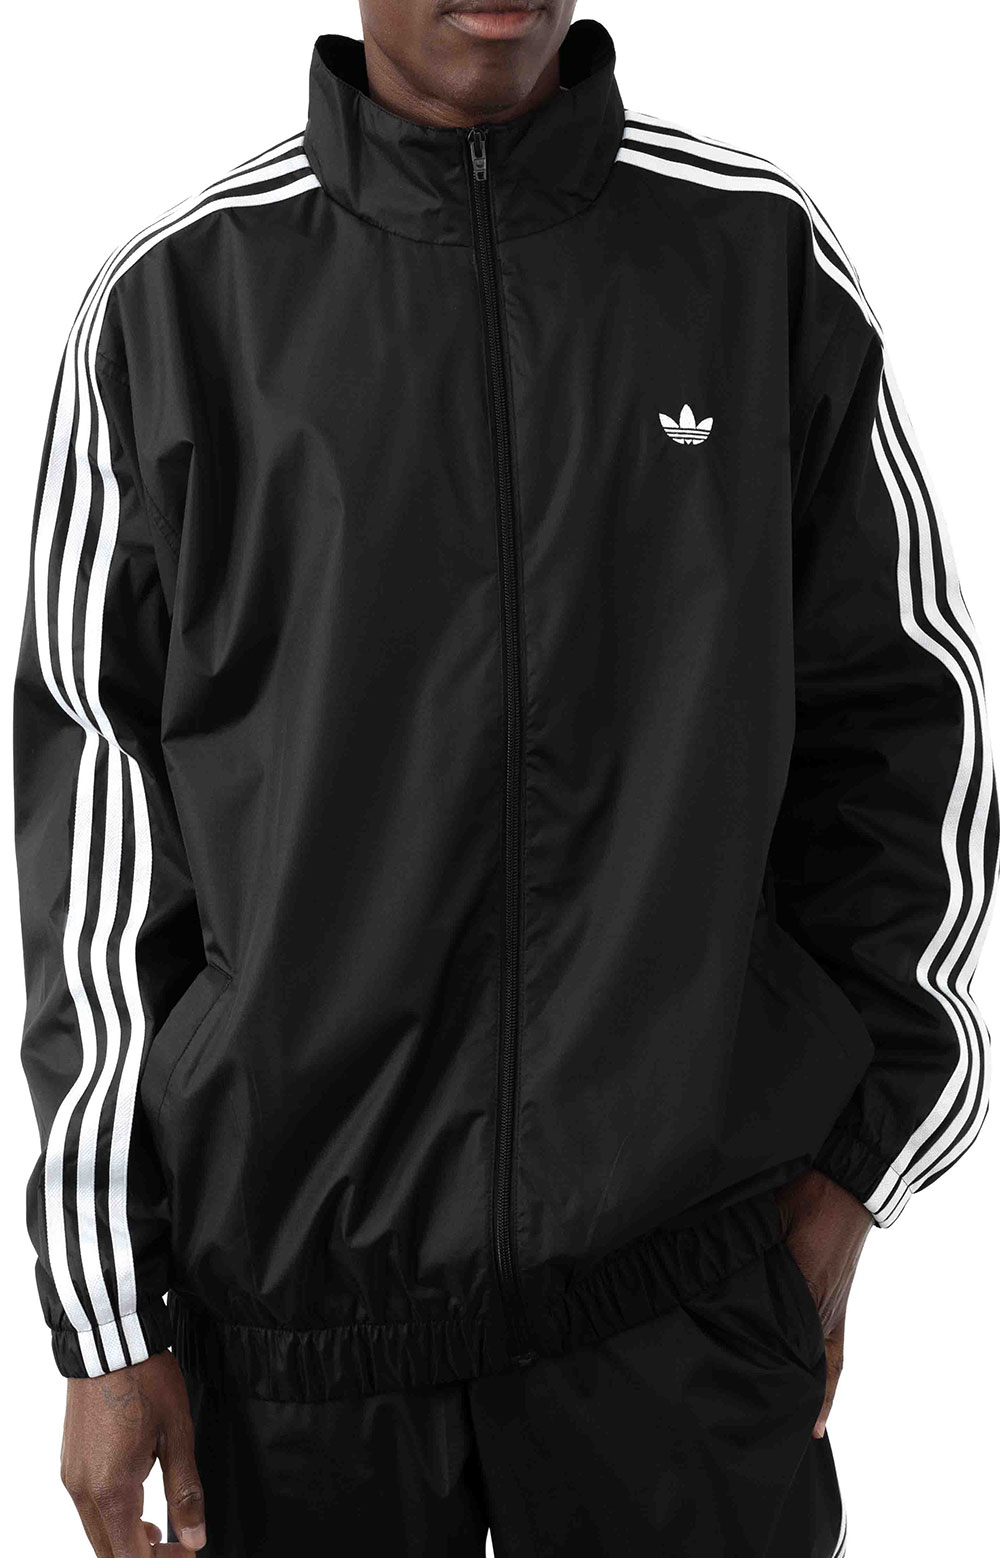 Firebird Jacket - Black/White